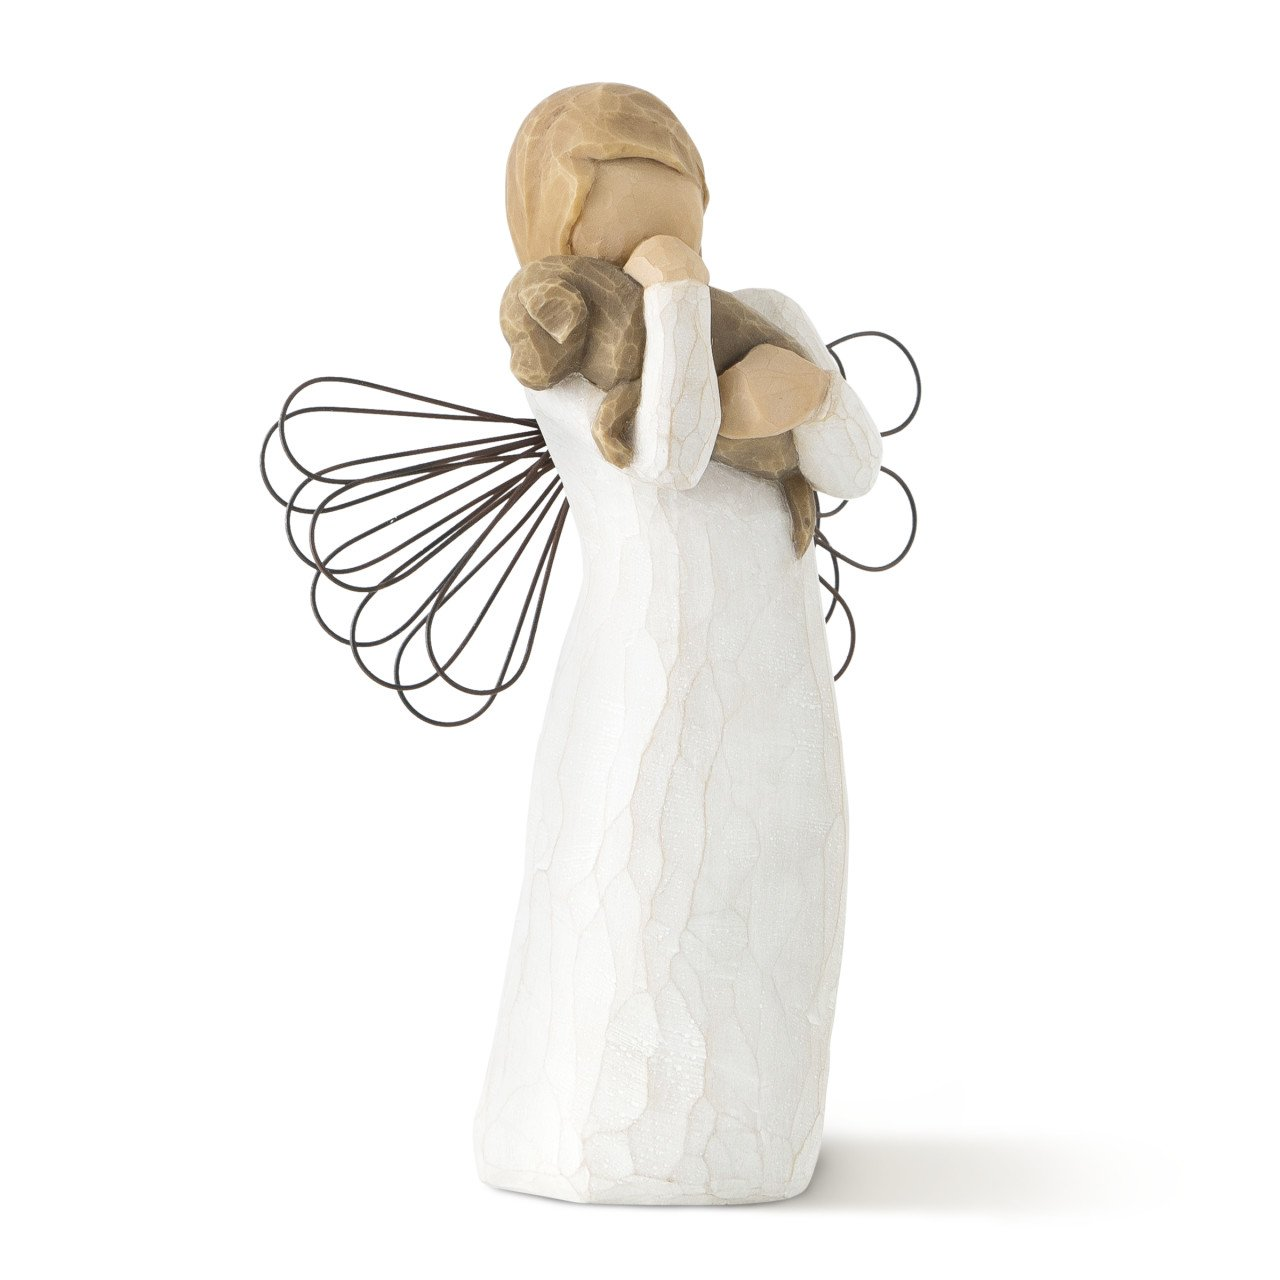 Willow Tree Angel of Friendship, sculpted hand-painted figure by Willow Tree